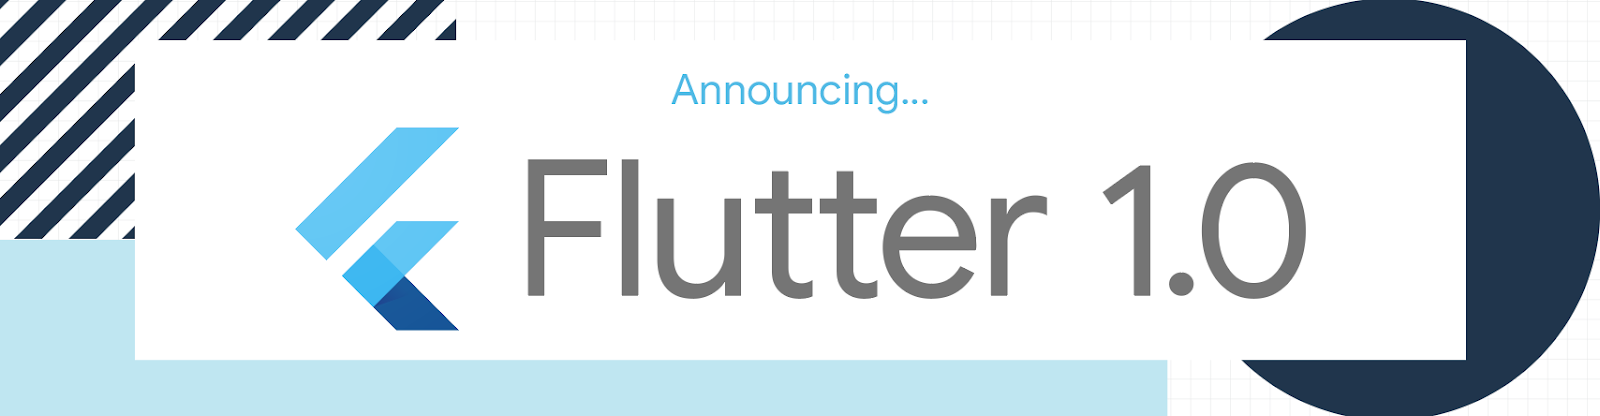 Google Developers Blog: Flutter 1 0: Google's Portable UI Toolkit